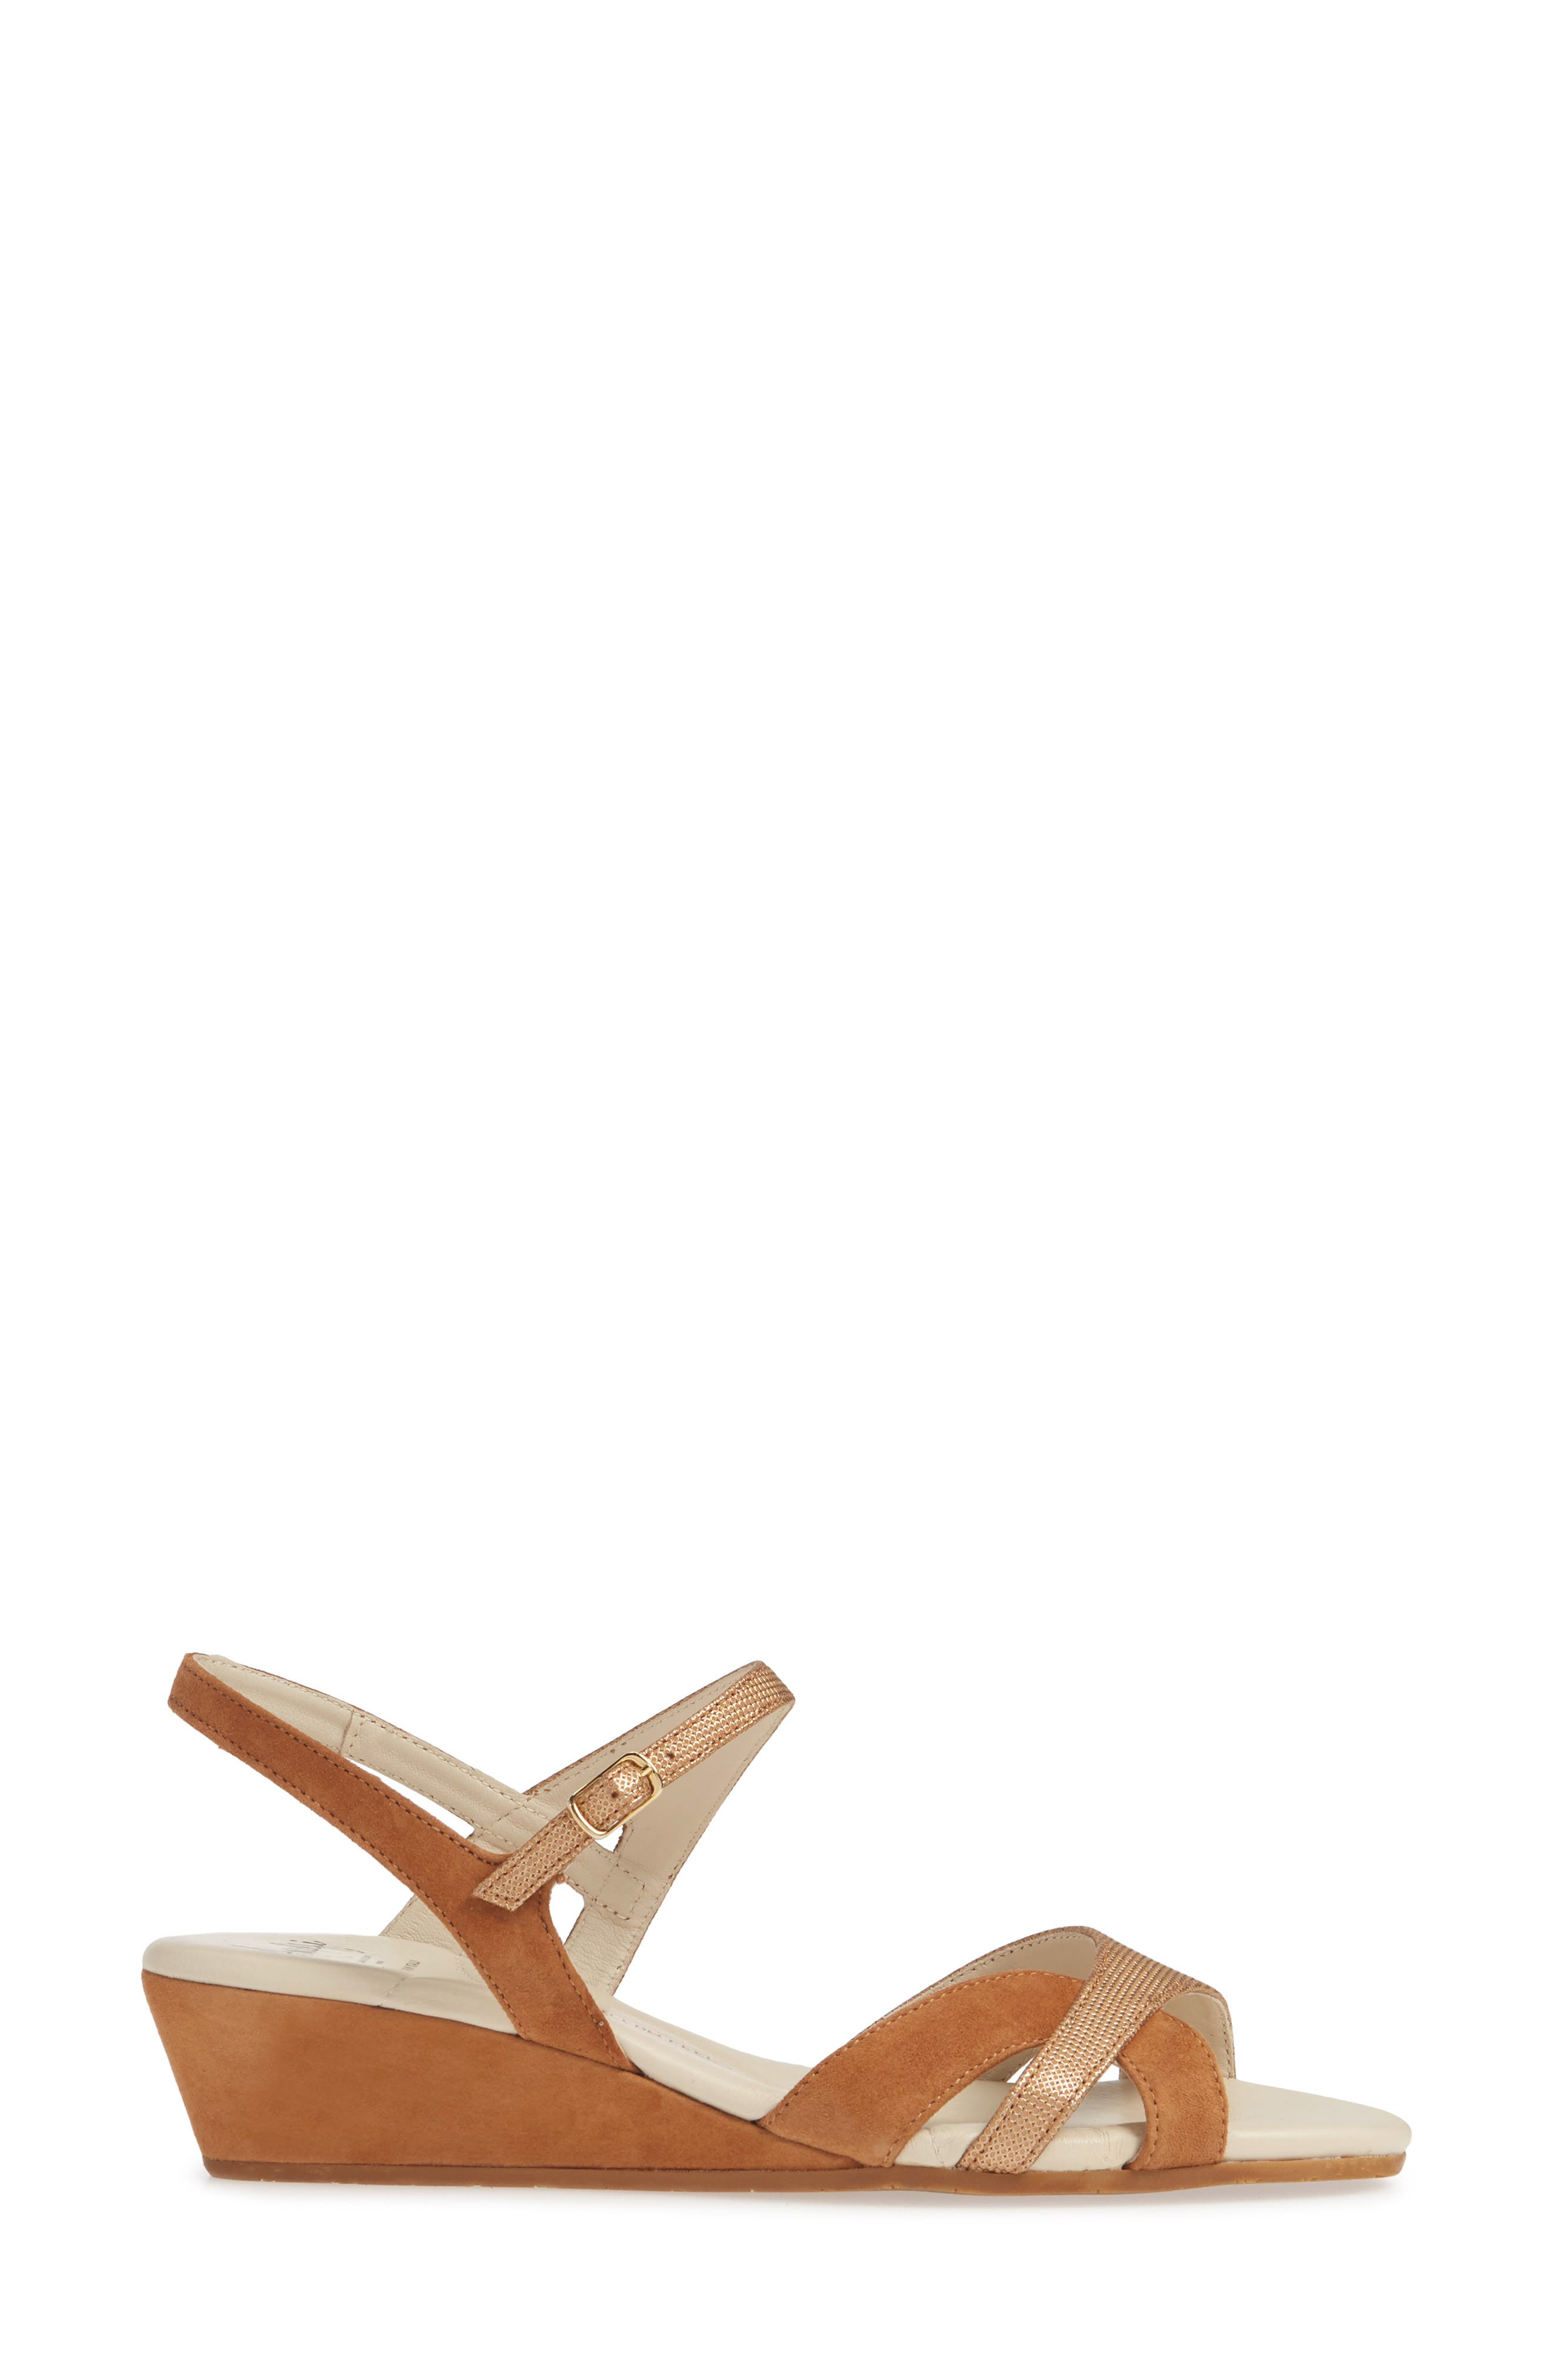 759d511f94bfd Women's Amalfi By Rangoni Narrow Shoes | Nordstrom